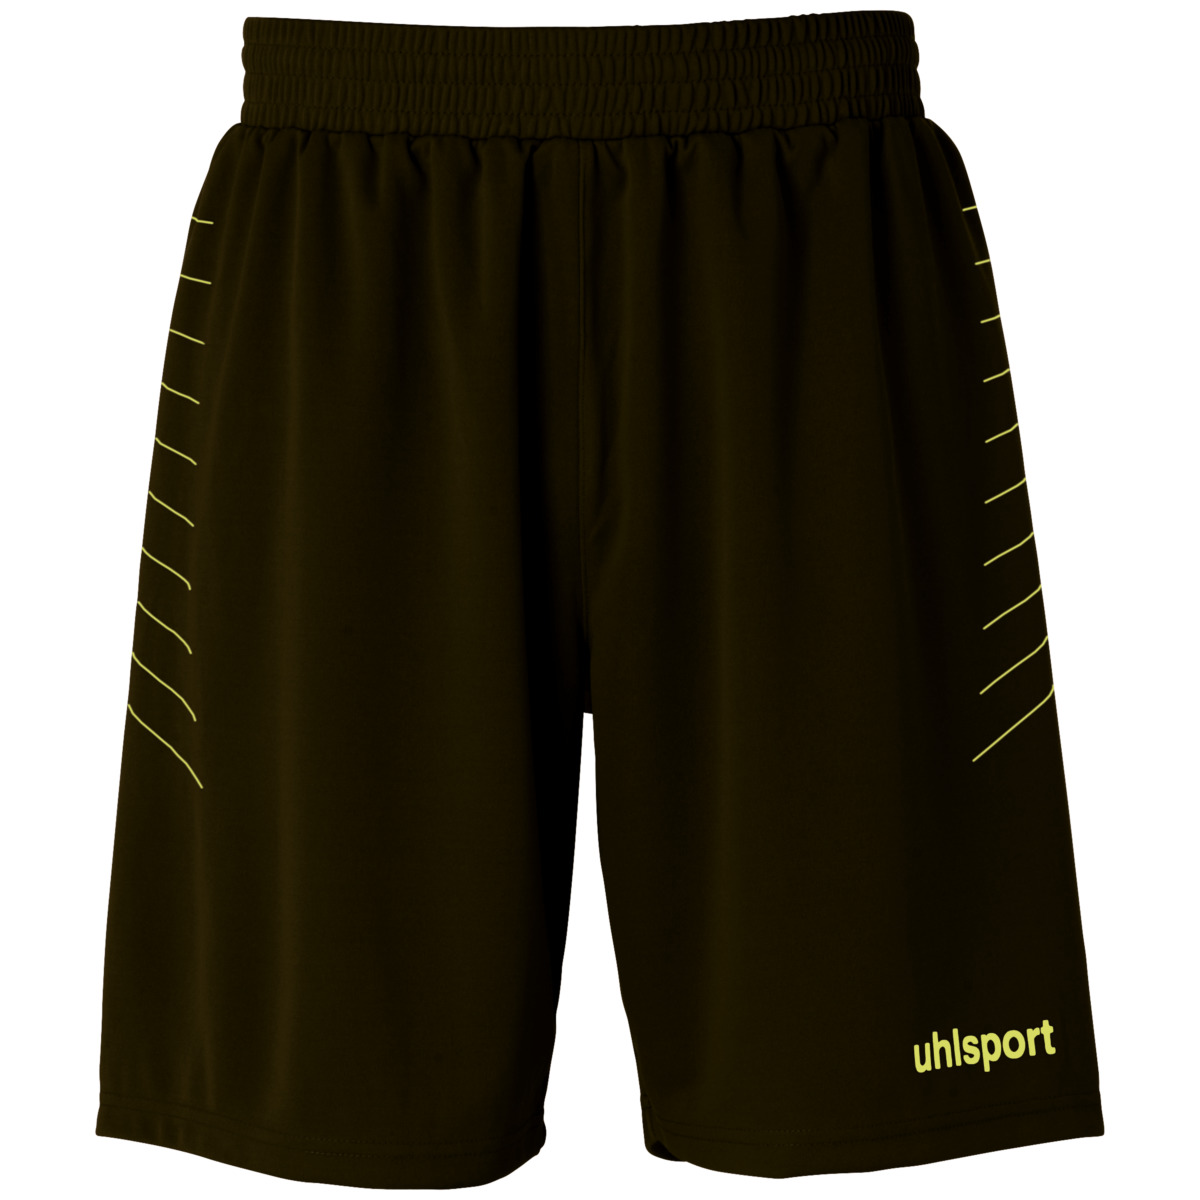 UHLSPORT MATCH GK Shorts